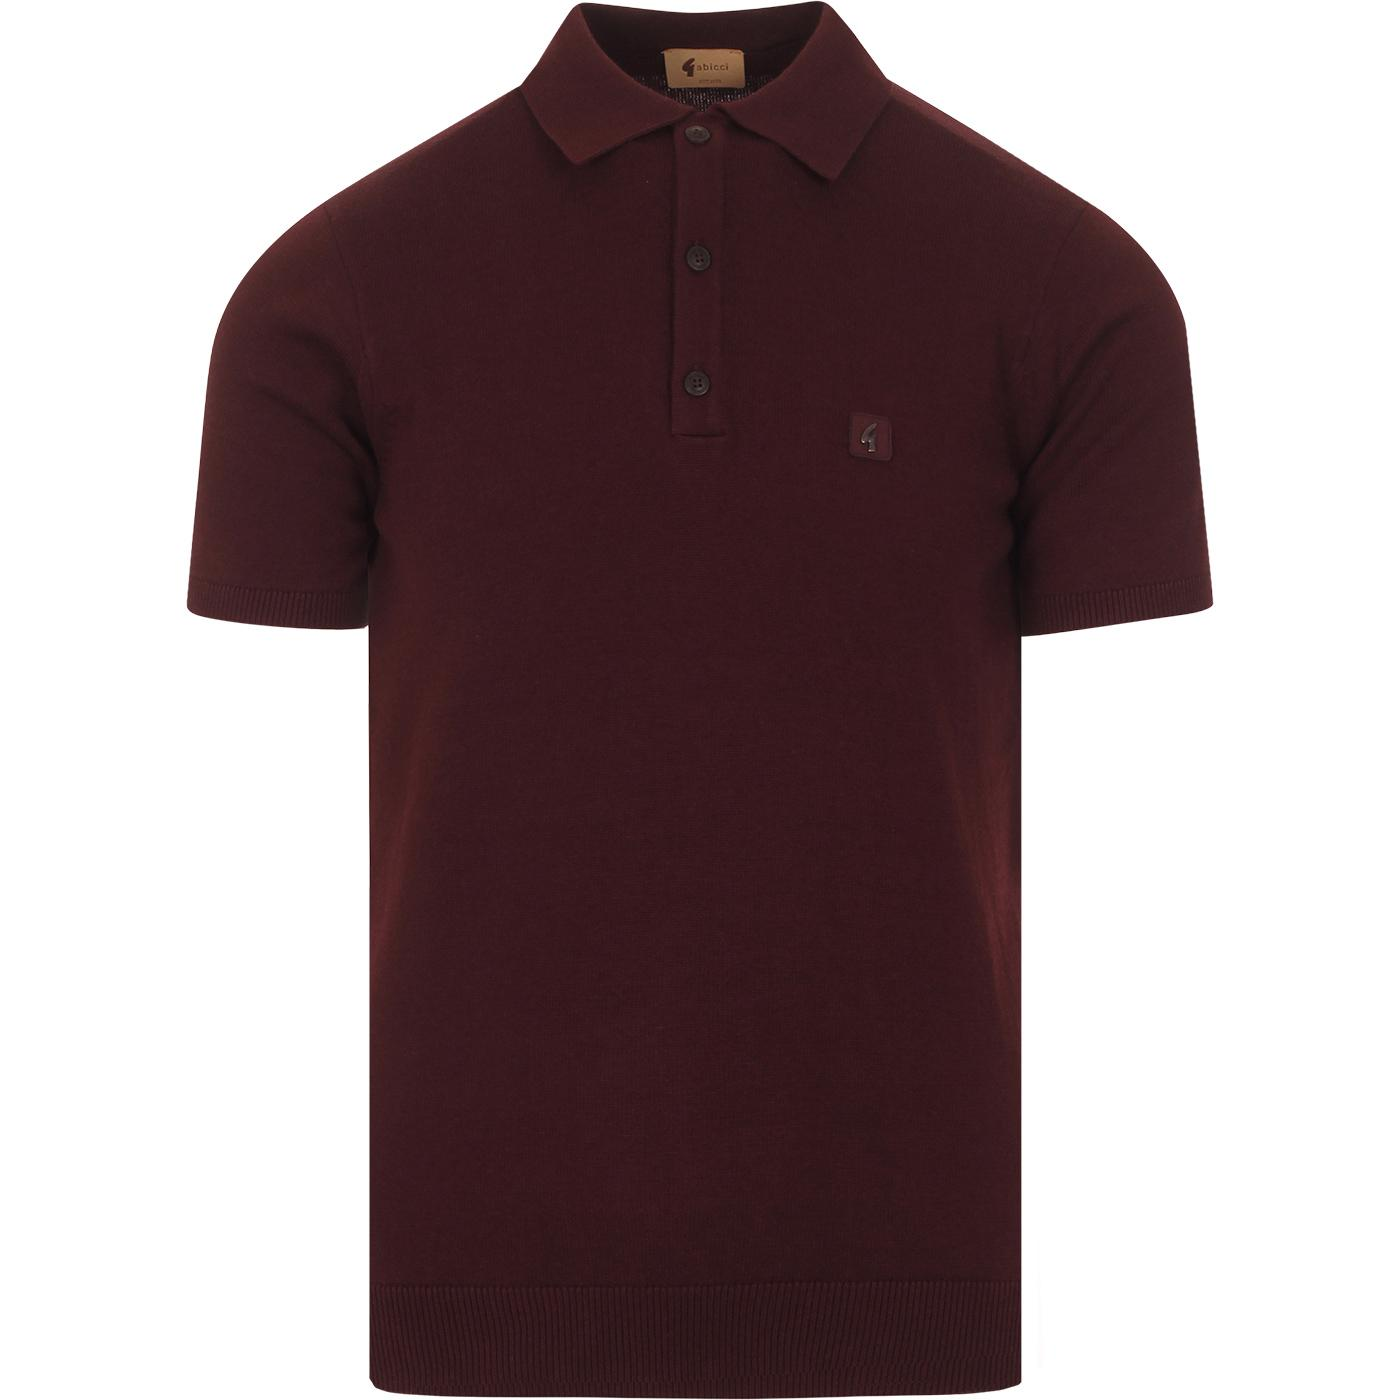 Jackson GABICCI VINTAGE Mod Knit Polo Top OXBLOOD